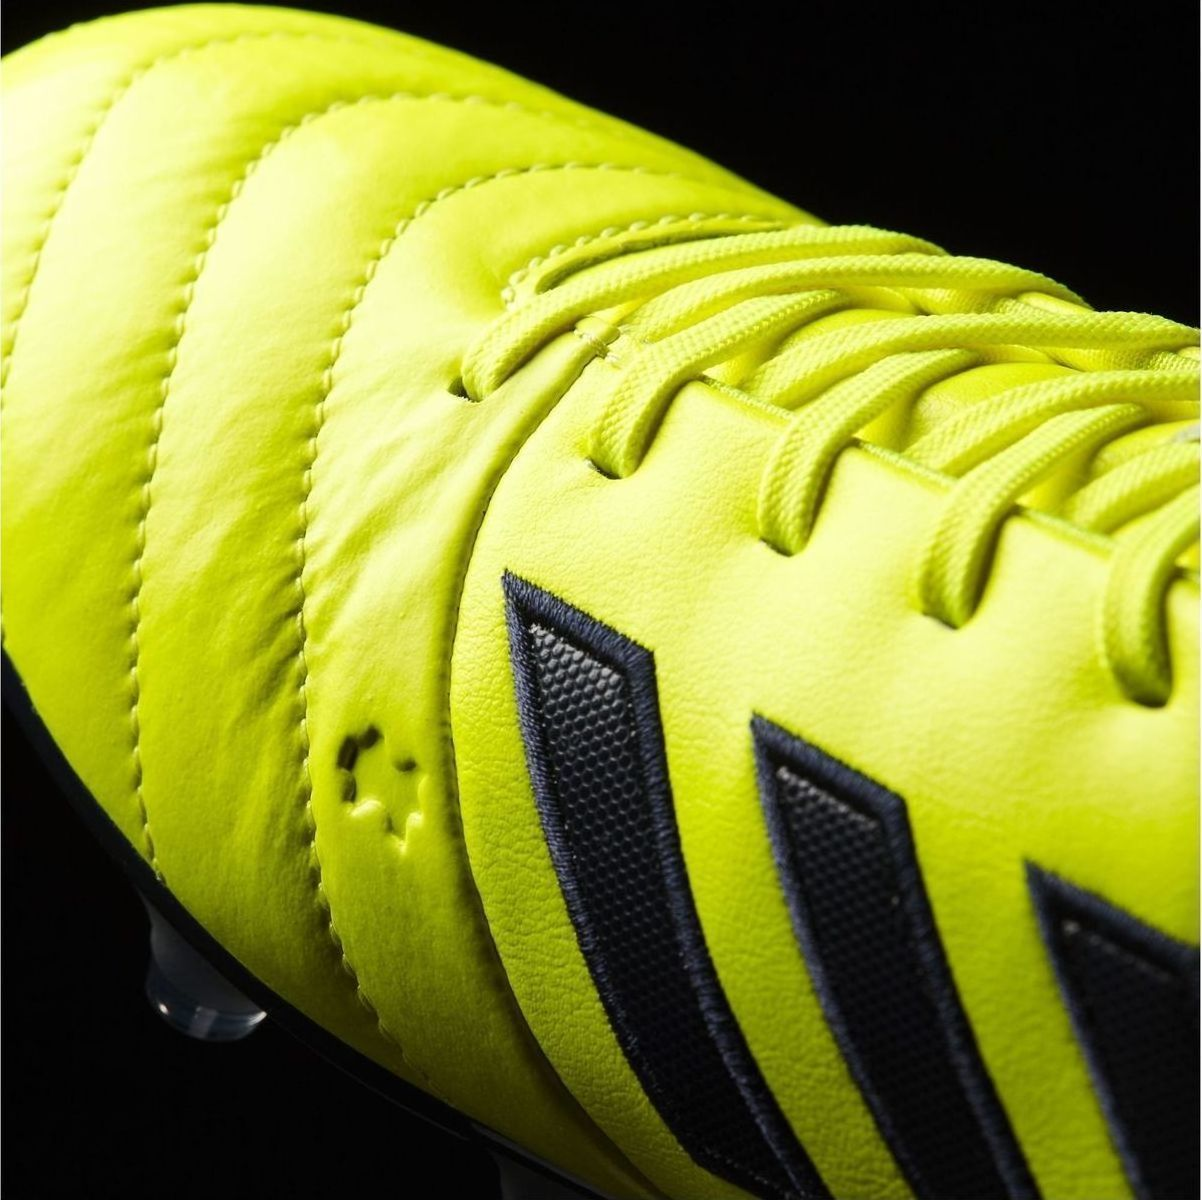 809f1a68dd3 ... great site for all shoes 50% off ... Adidas Copa 17.2 FG S77137 ...